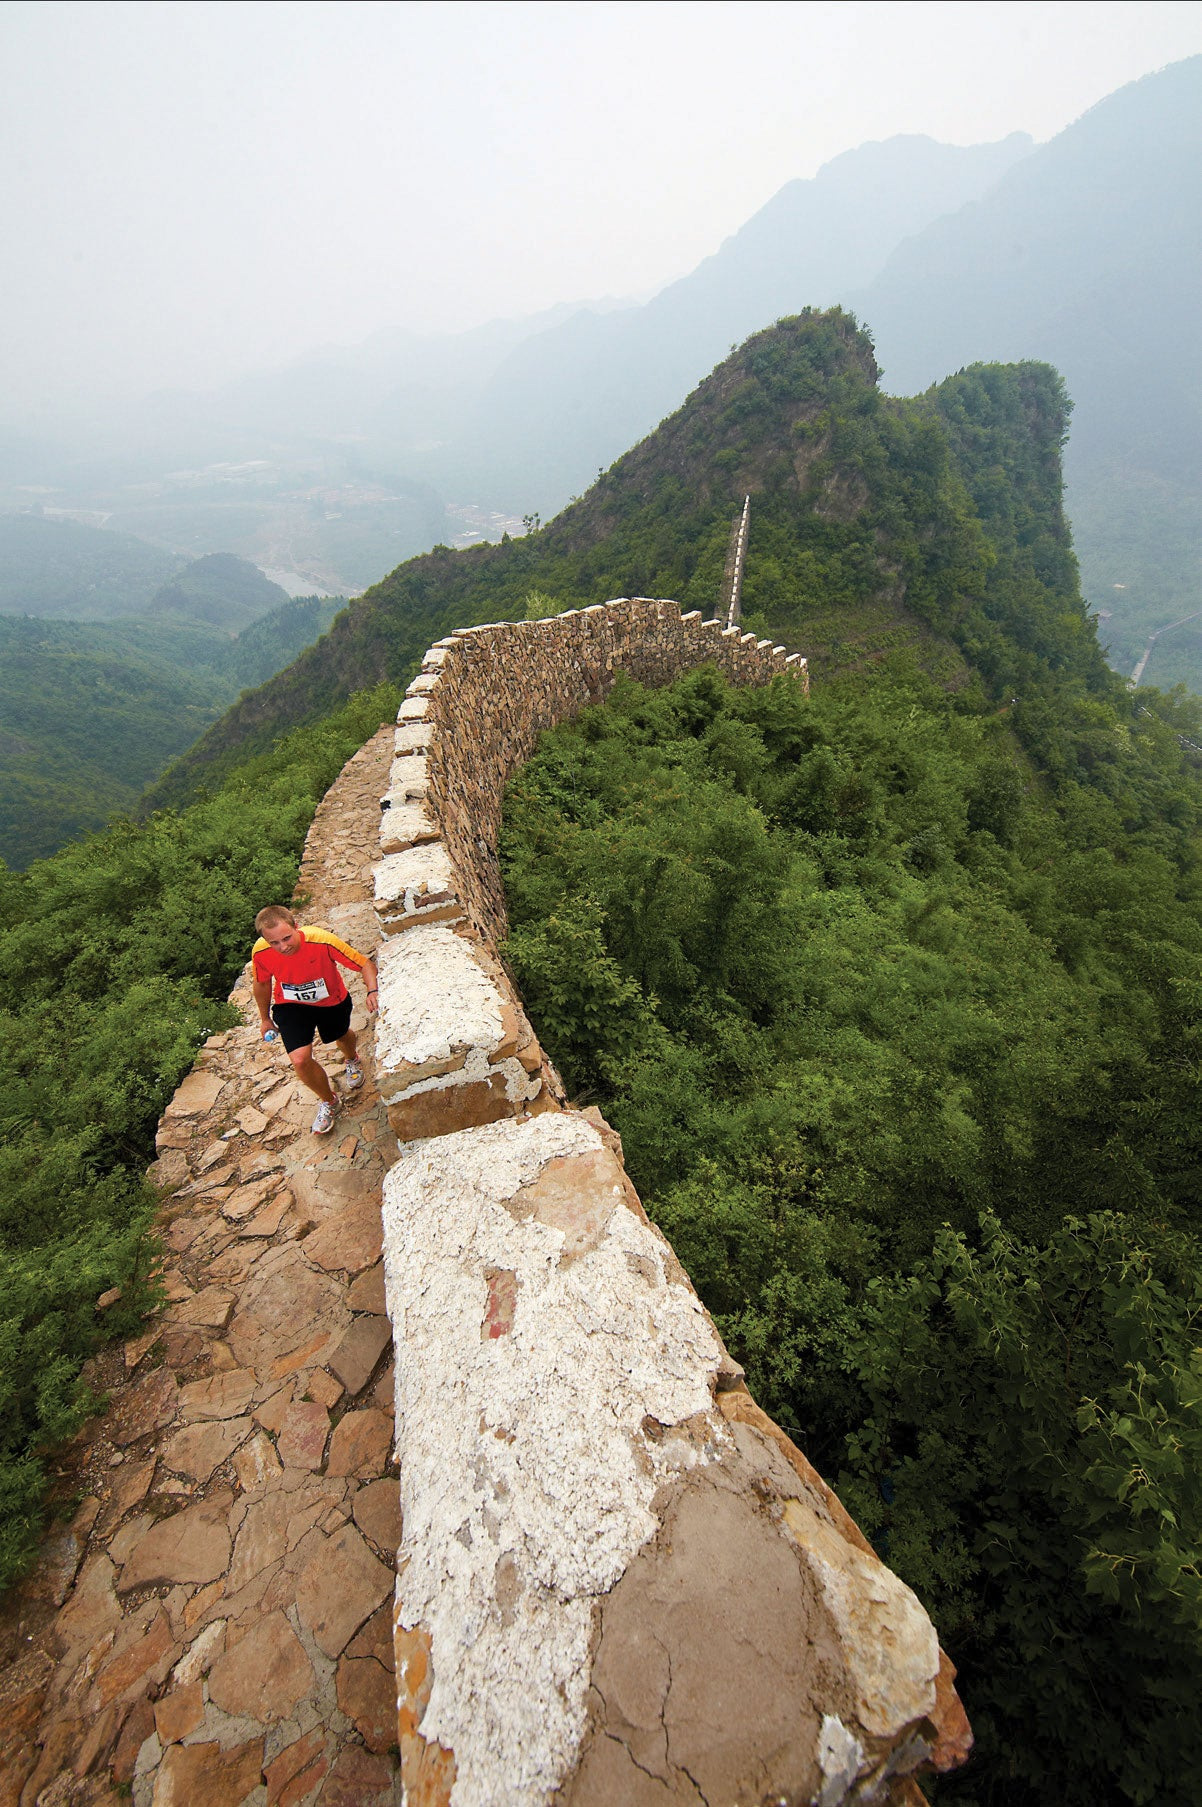 To run the race, participants must sign up for a six- or seven-day travel package, which includes everything from registration, ground transfers, lodging and sightseeing in Beijing.